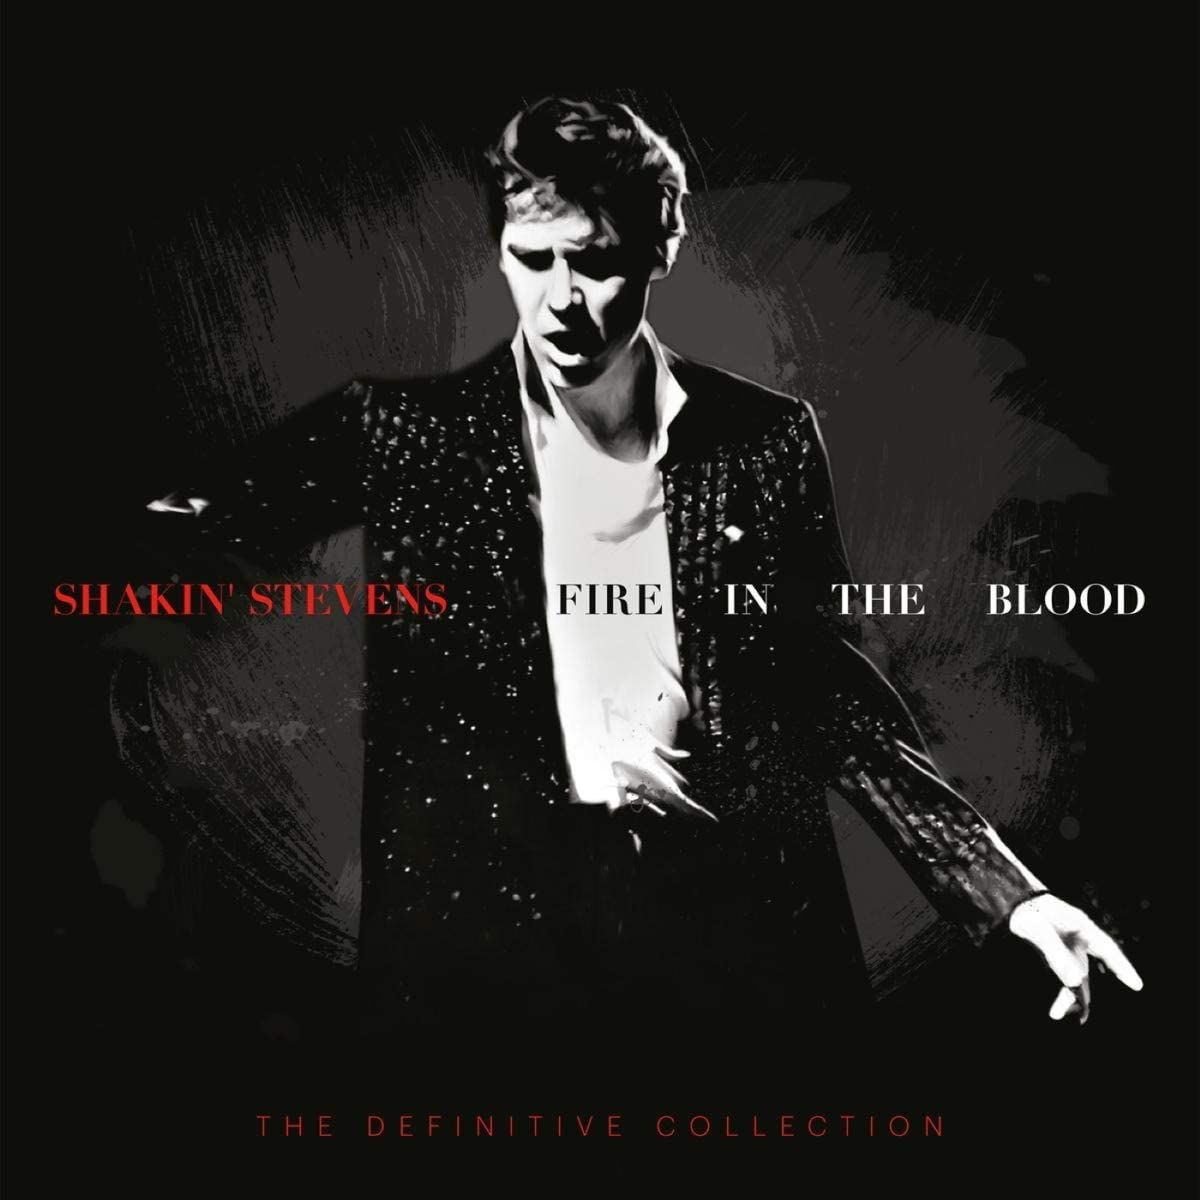 This is a stunning collectors box set and one of the best presentations I've seen in a long time. The truly definitive collection of this living legend's body of work as a solo artist.'Fire In The Blood' is the biggest and most complete collection of Shaky's recordings ever undertaken - a celebration of the achievements of an enduring artist whose chart statistics, however phenomenal, tell only part of his story. From his solo debut album on Track Records, 'Shakin' Stevens', to the recent succes